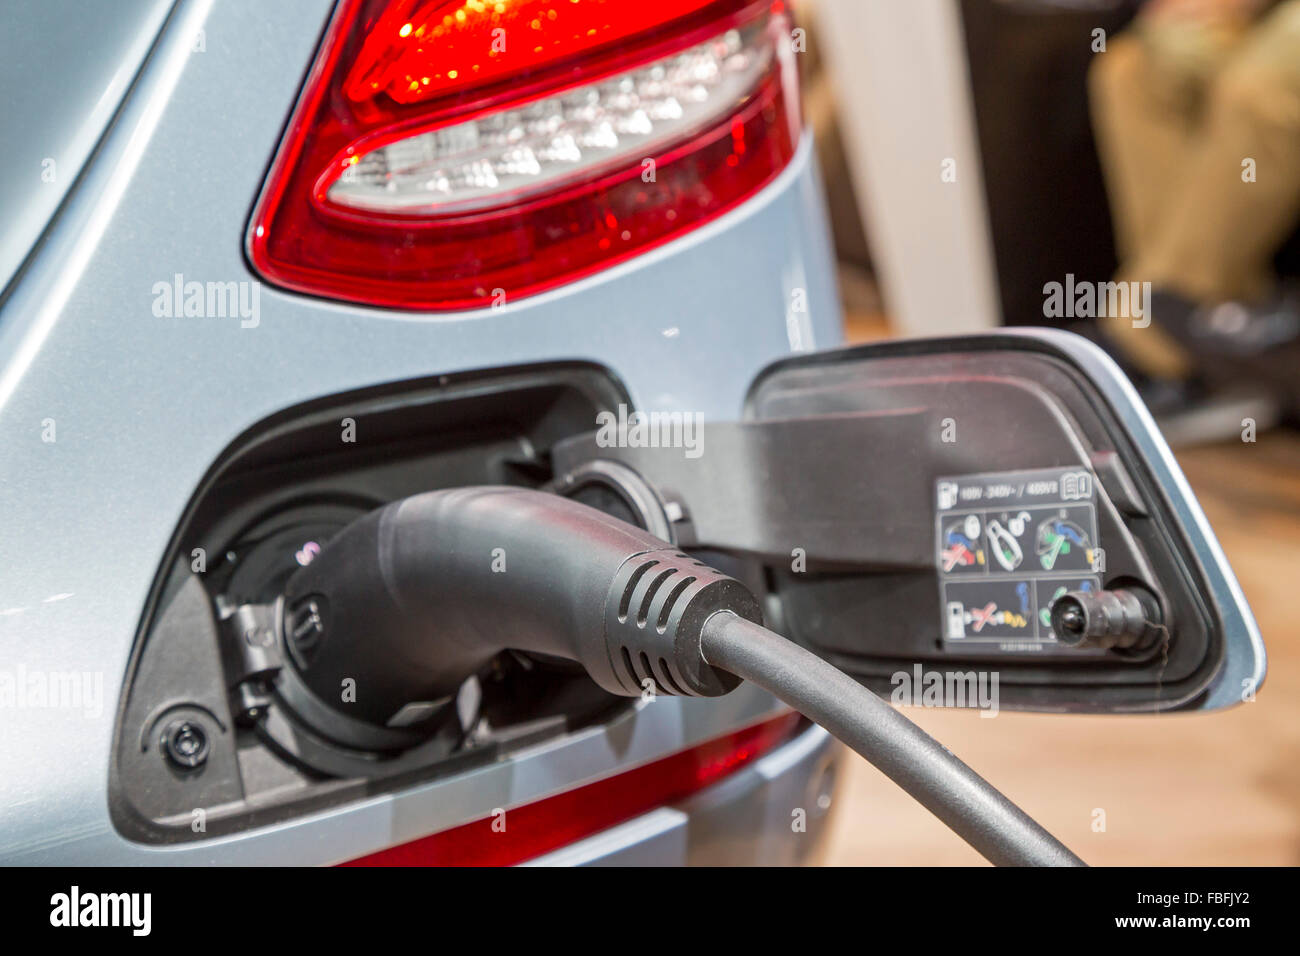 Detroit, Michigan - The Mercedes E-Class Plug-in Hybrid electric car on display at the North American International - Stock Image